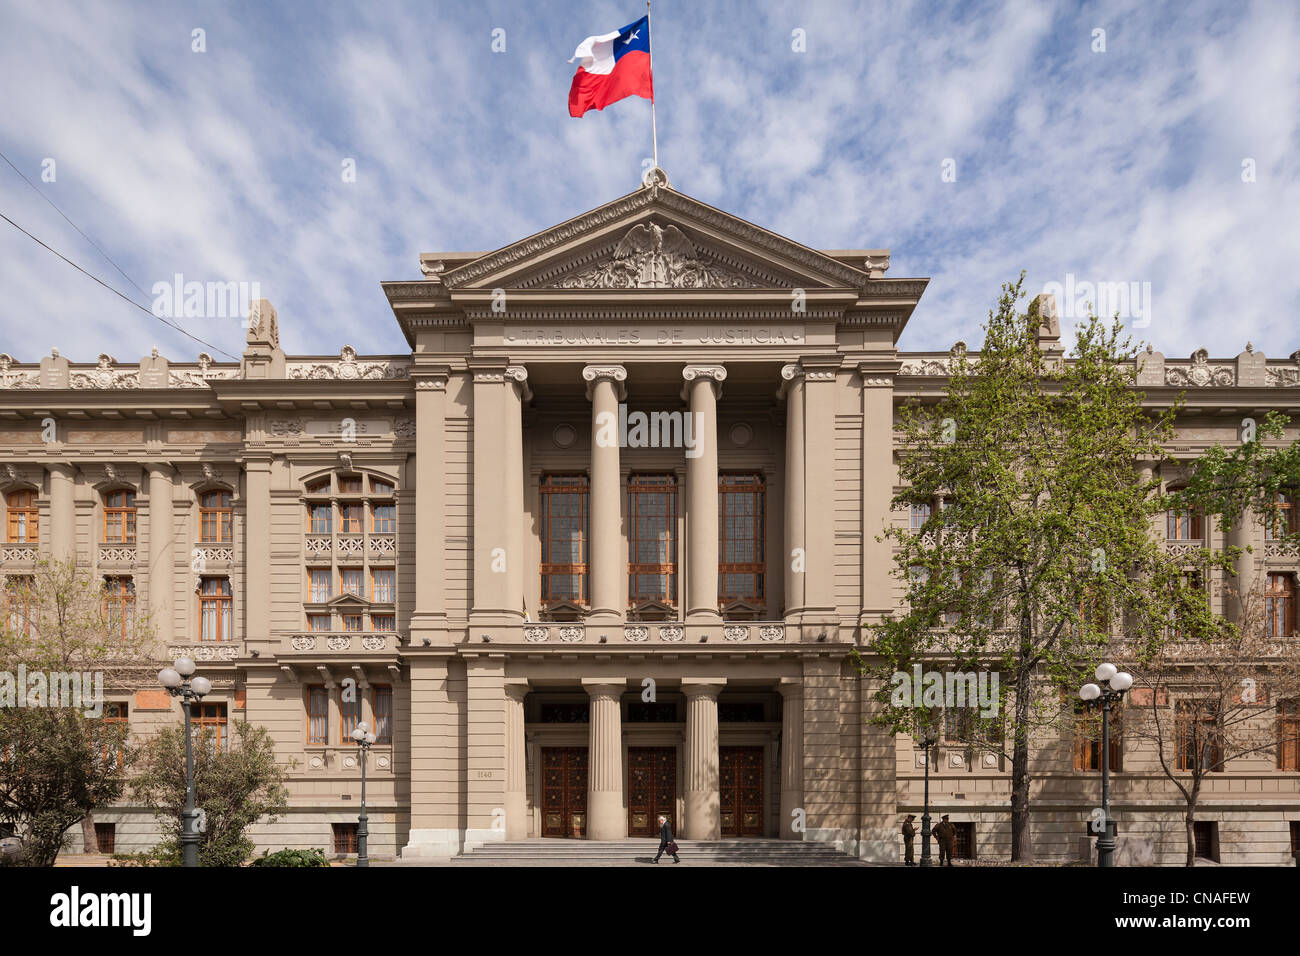 Chilean Supreme Court building; Palace of Justice; Tribunales de Justicia, in Santiago de Chile - Stock Image